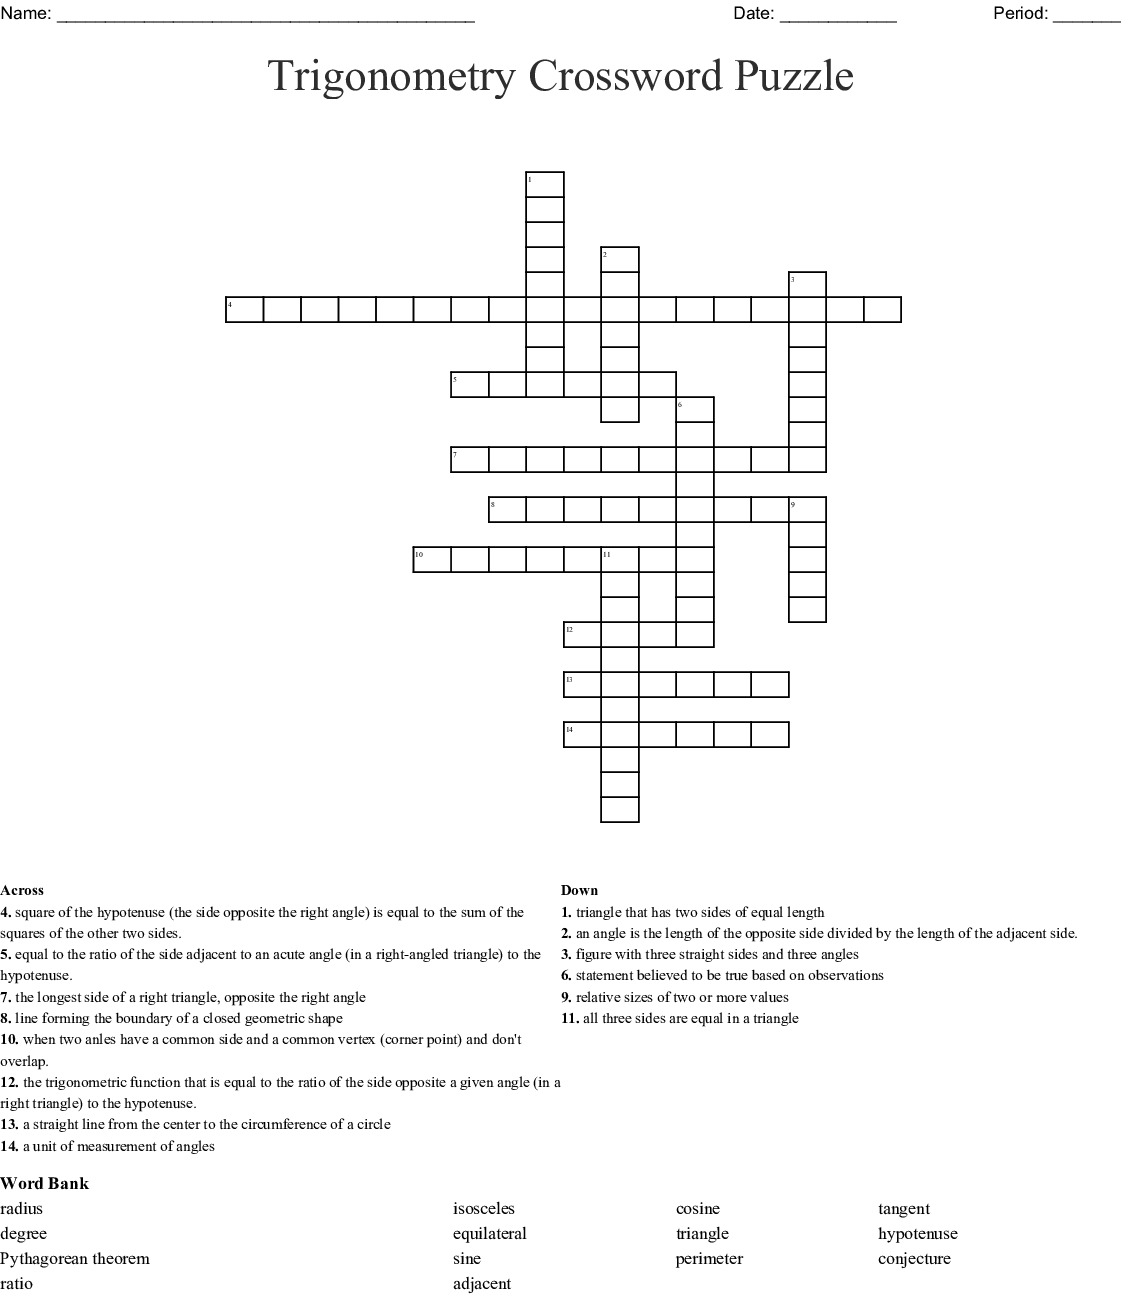 Right Triangle And Trigonometry Crossword